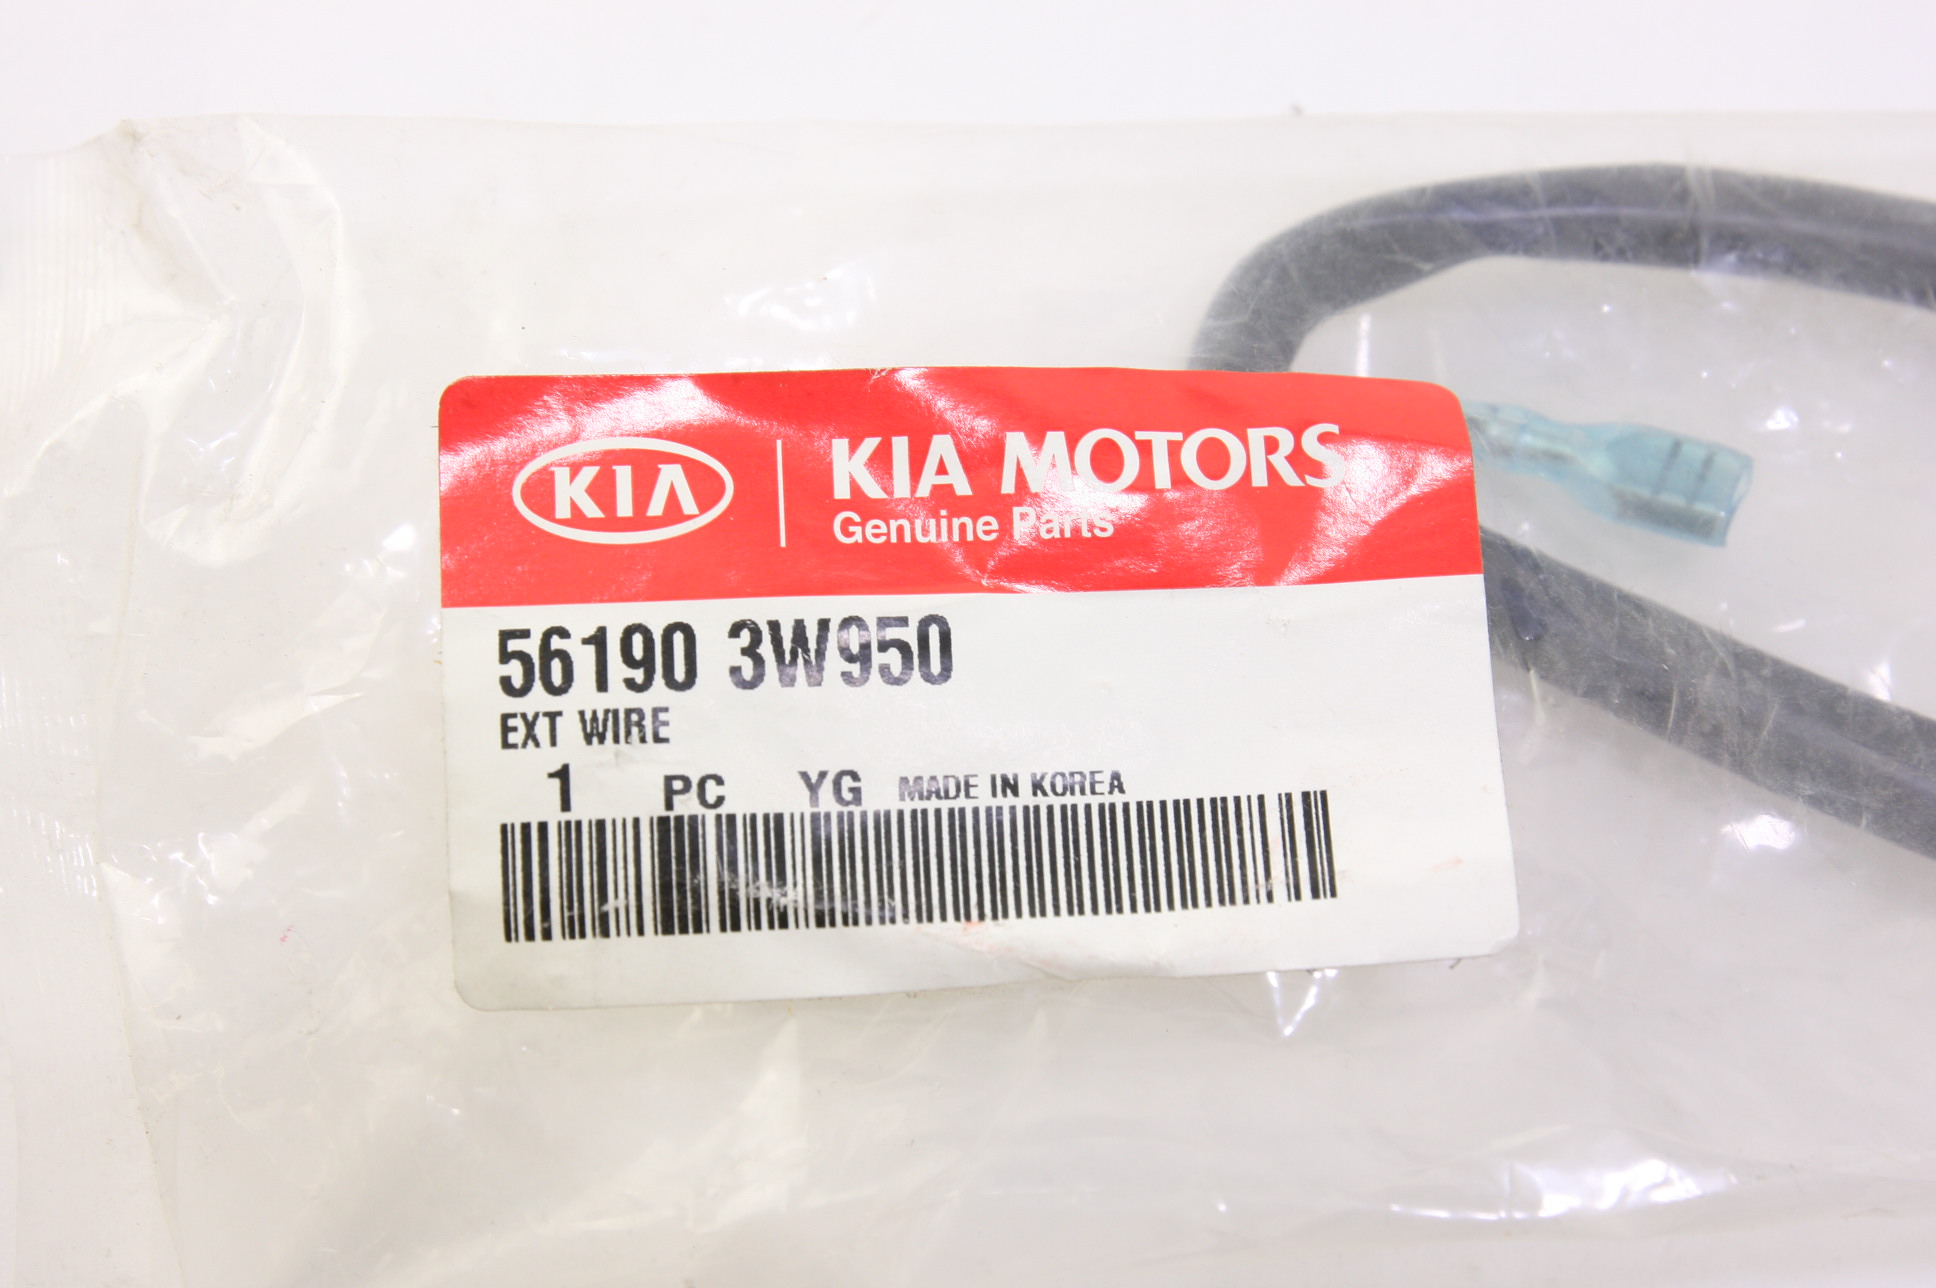 ** New KIA OEM 561903W950 Genuine Kia Part Ext Wire Fast Free Shipping NIP - image 2